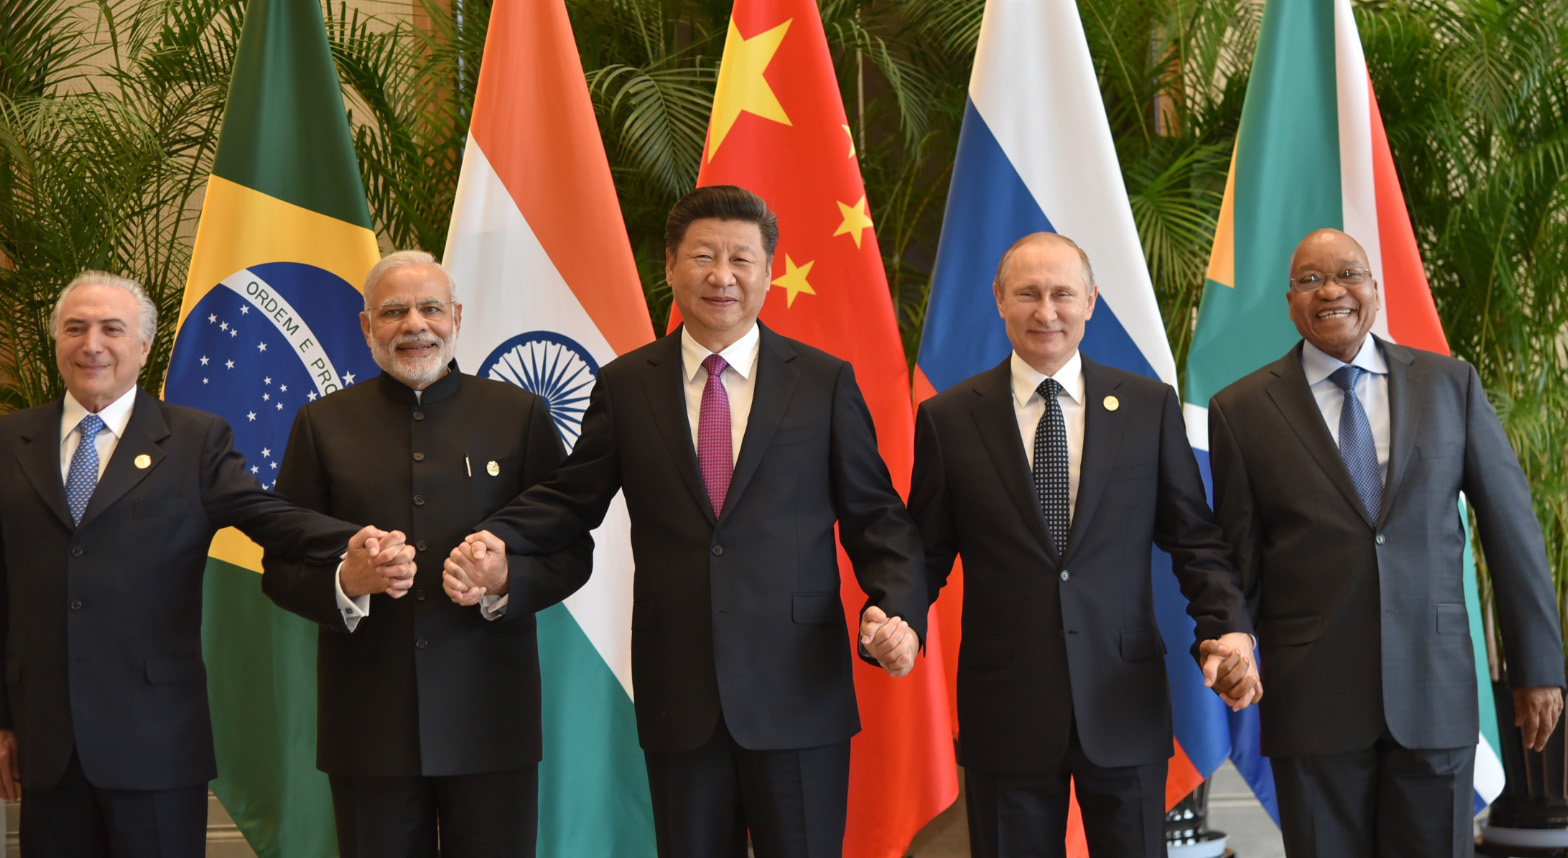 https://upload.wikimedia.org/wikipedia/commons/6/6b/BRICS_leaders_meet_on_the_sidelines_of_2016_G20_Summit_in_China.jpg